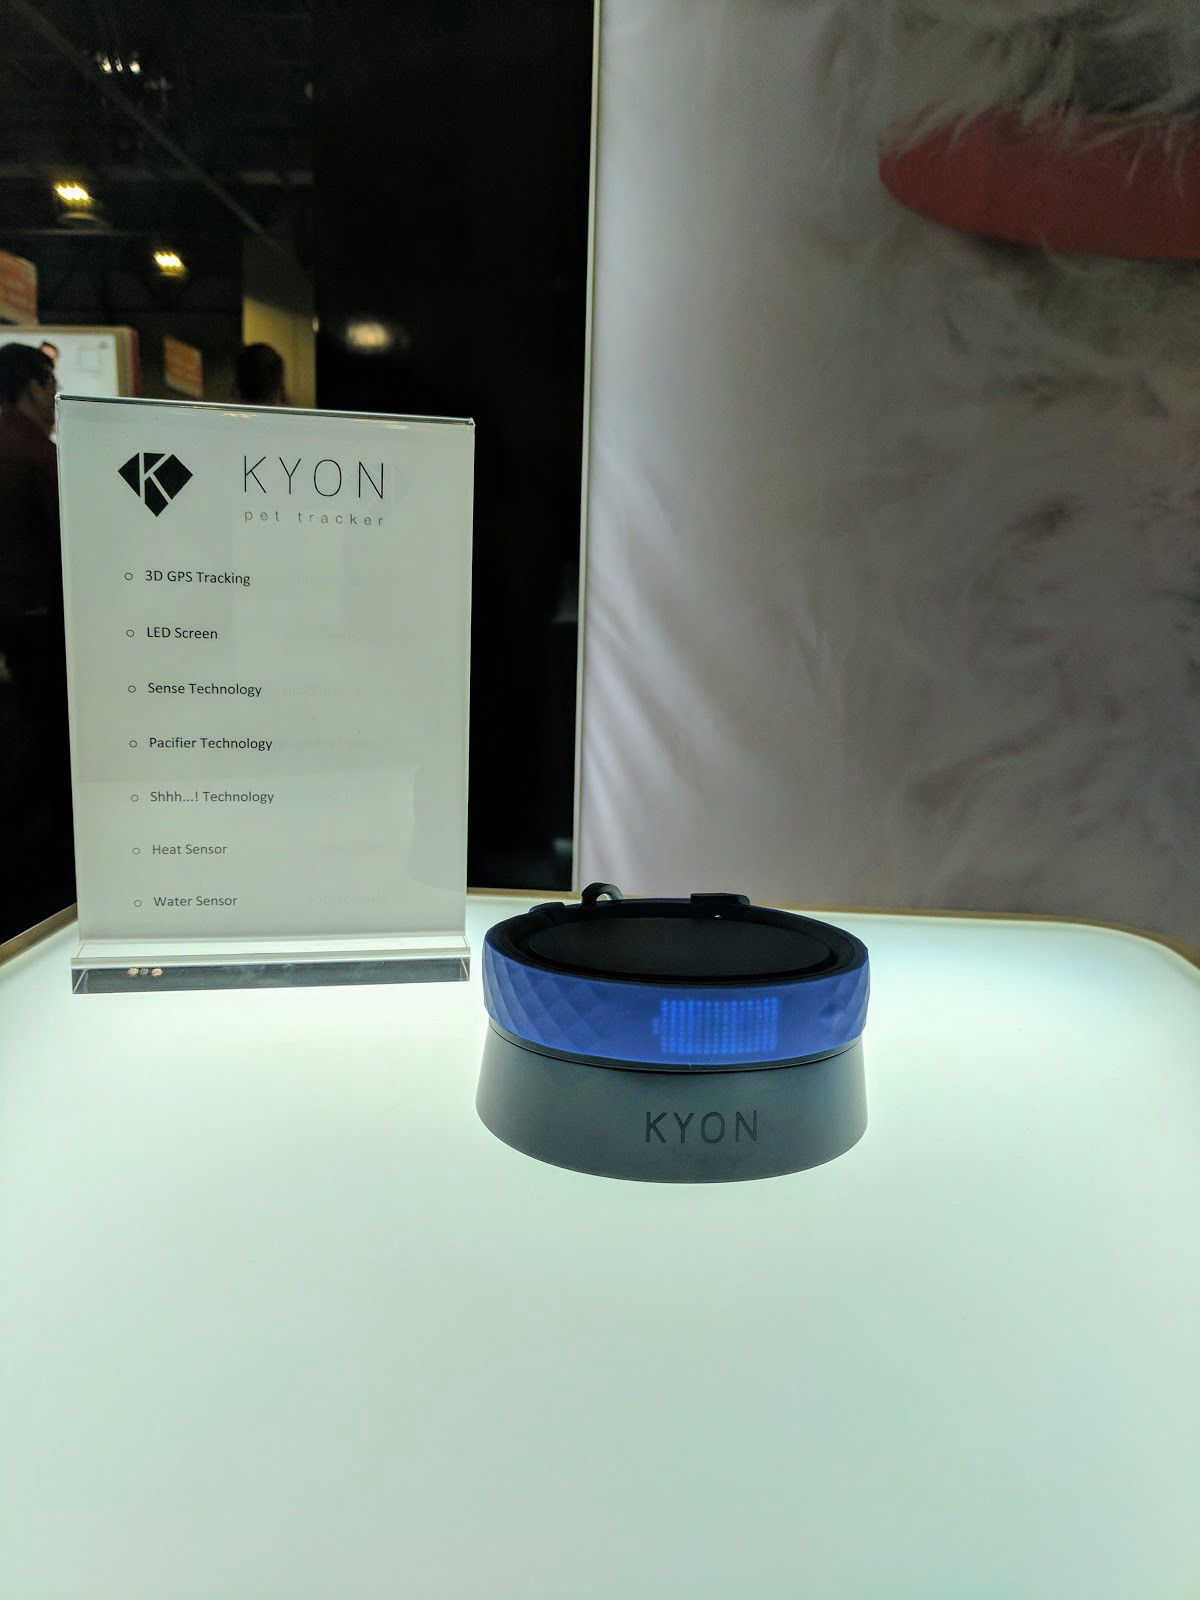 Kyon's 'Up'-inspired collar with an LED screen. (Alyssa Bereznak)